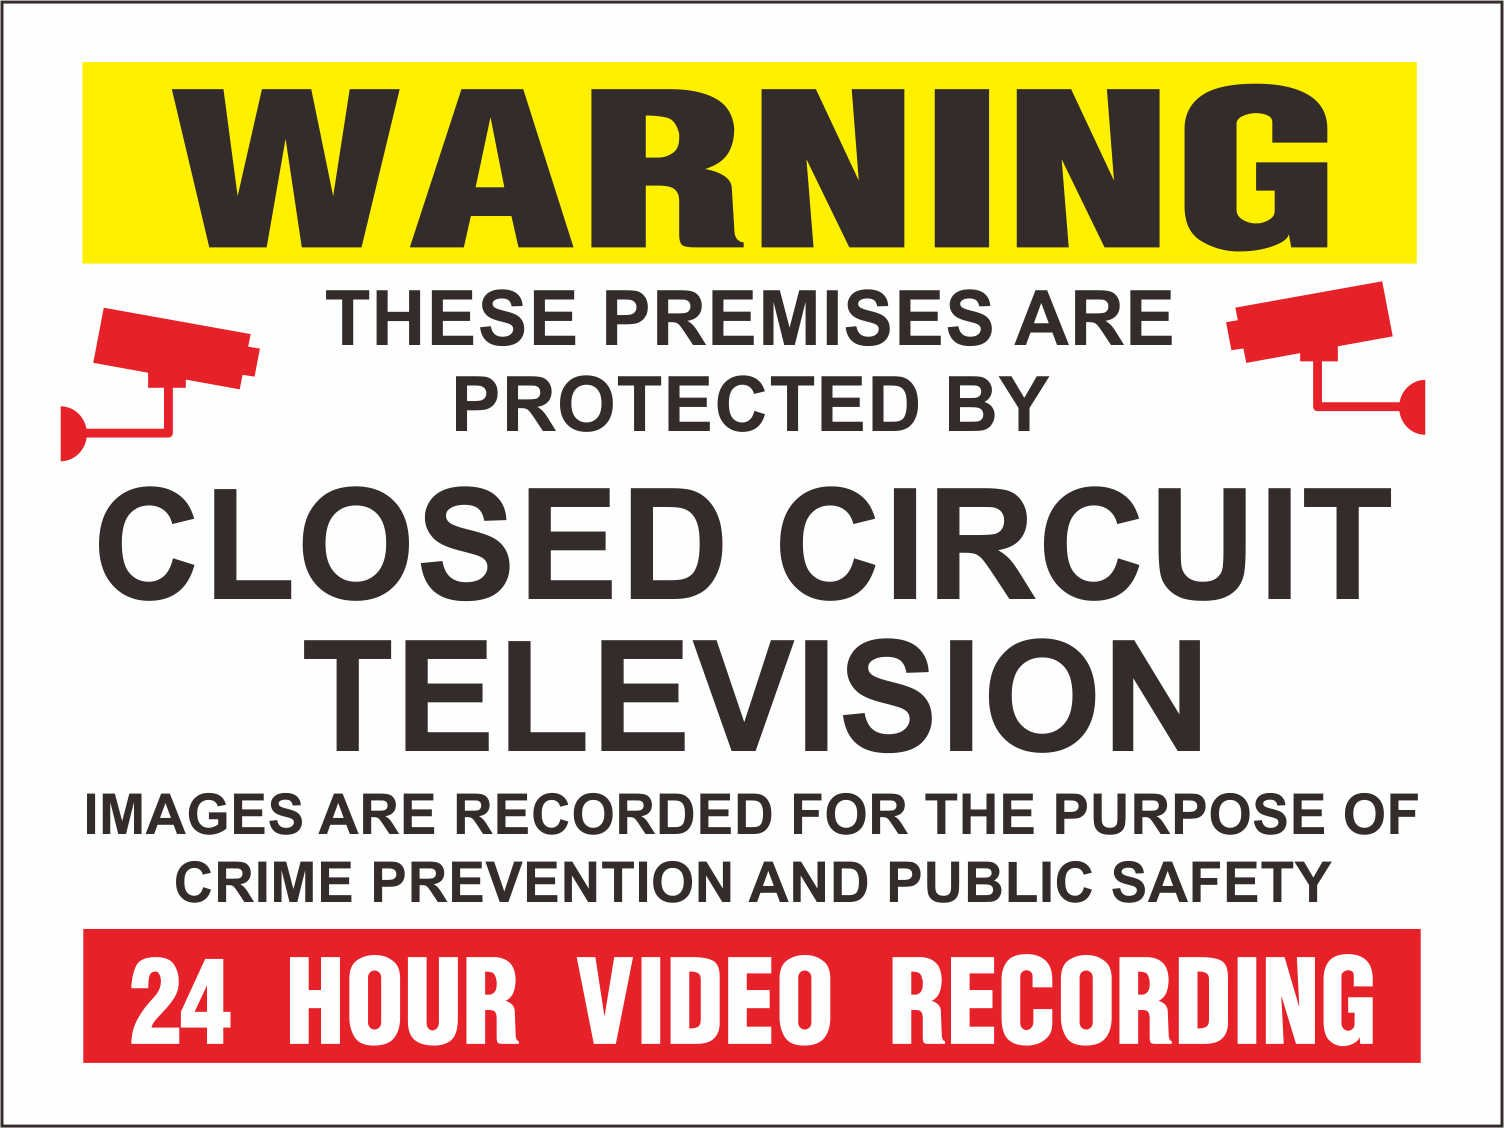 INDIGOS UG - Sticker - Safety - Warning - Set of 5 pack - Warning CCTV Closed Circuit Television 24 Hour Video Recording 20x15cm - Decal for Office/Company/School/Hotel